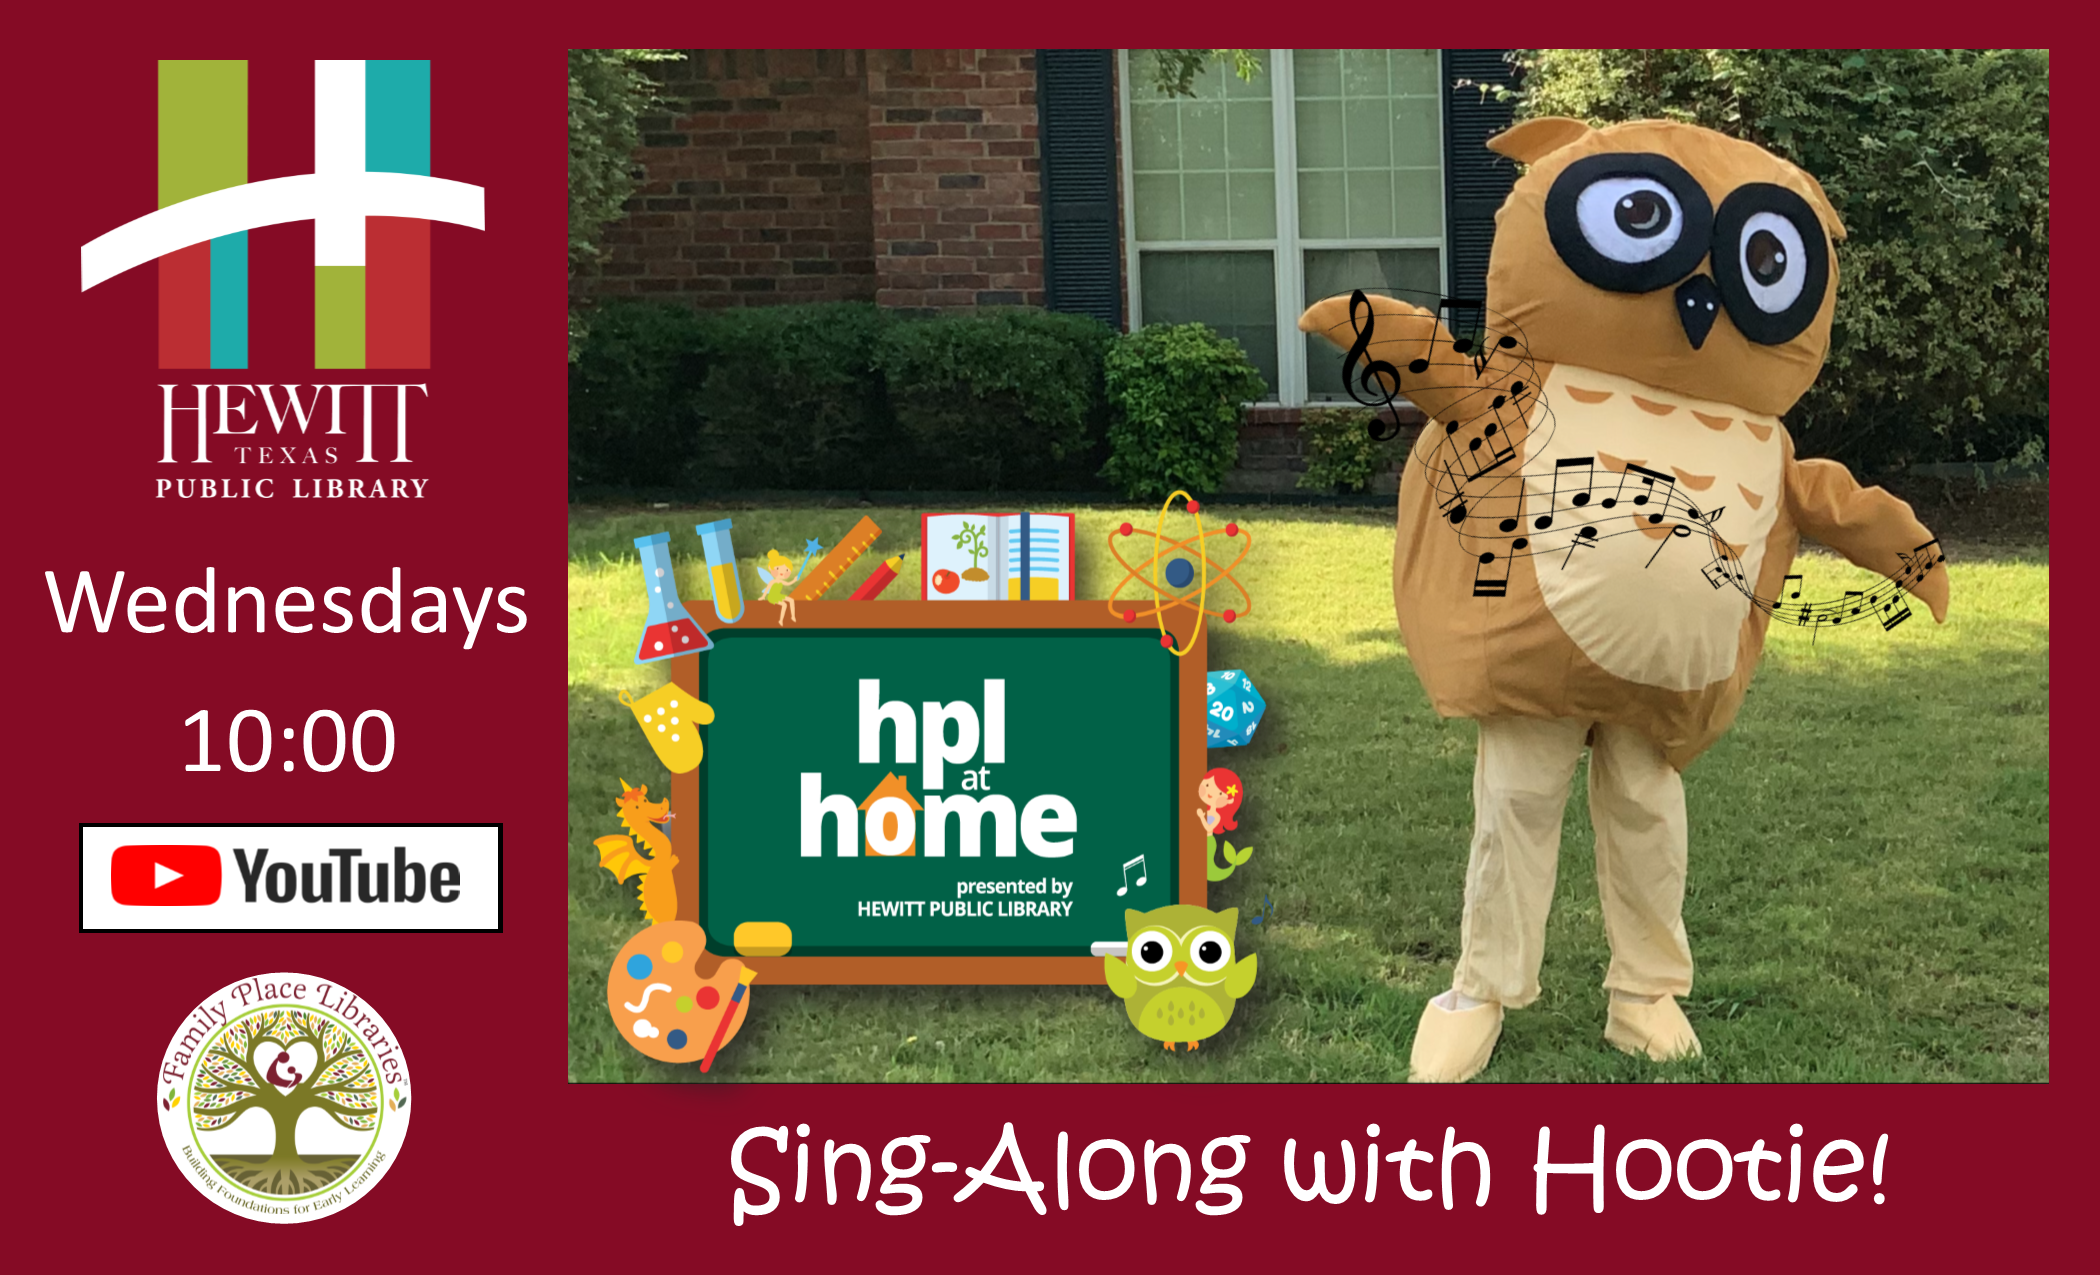 Hootie Sing Along Ad